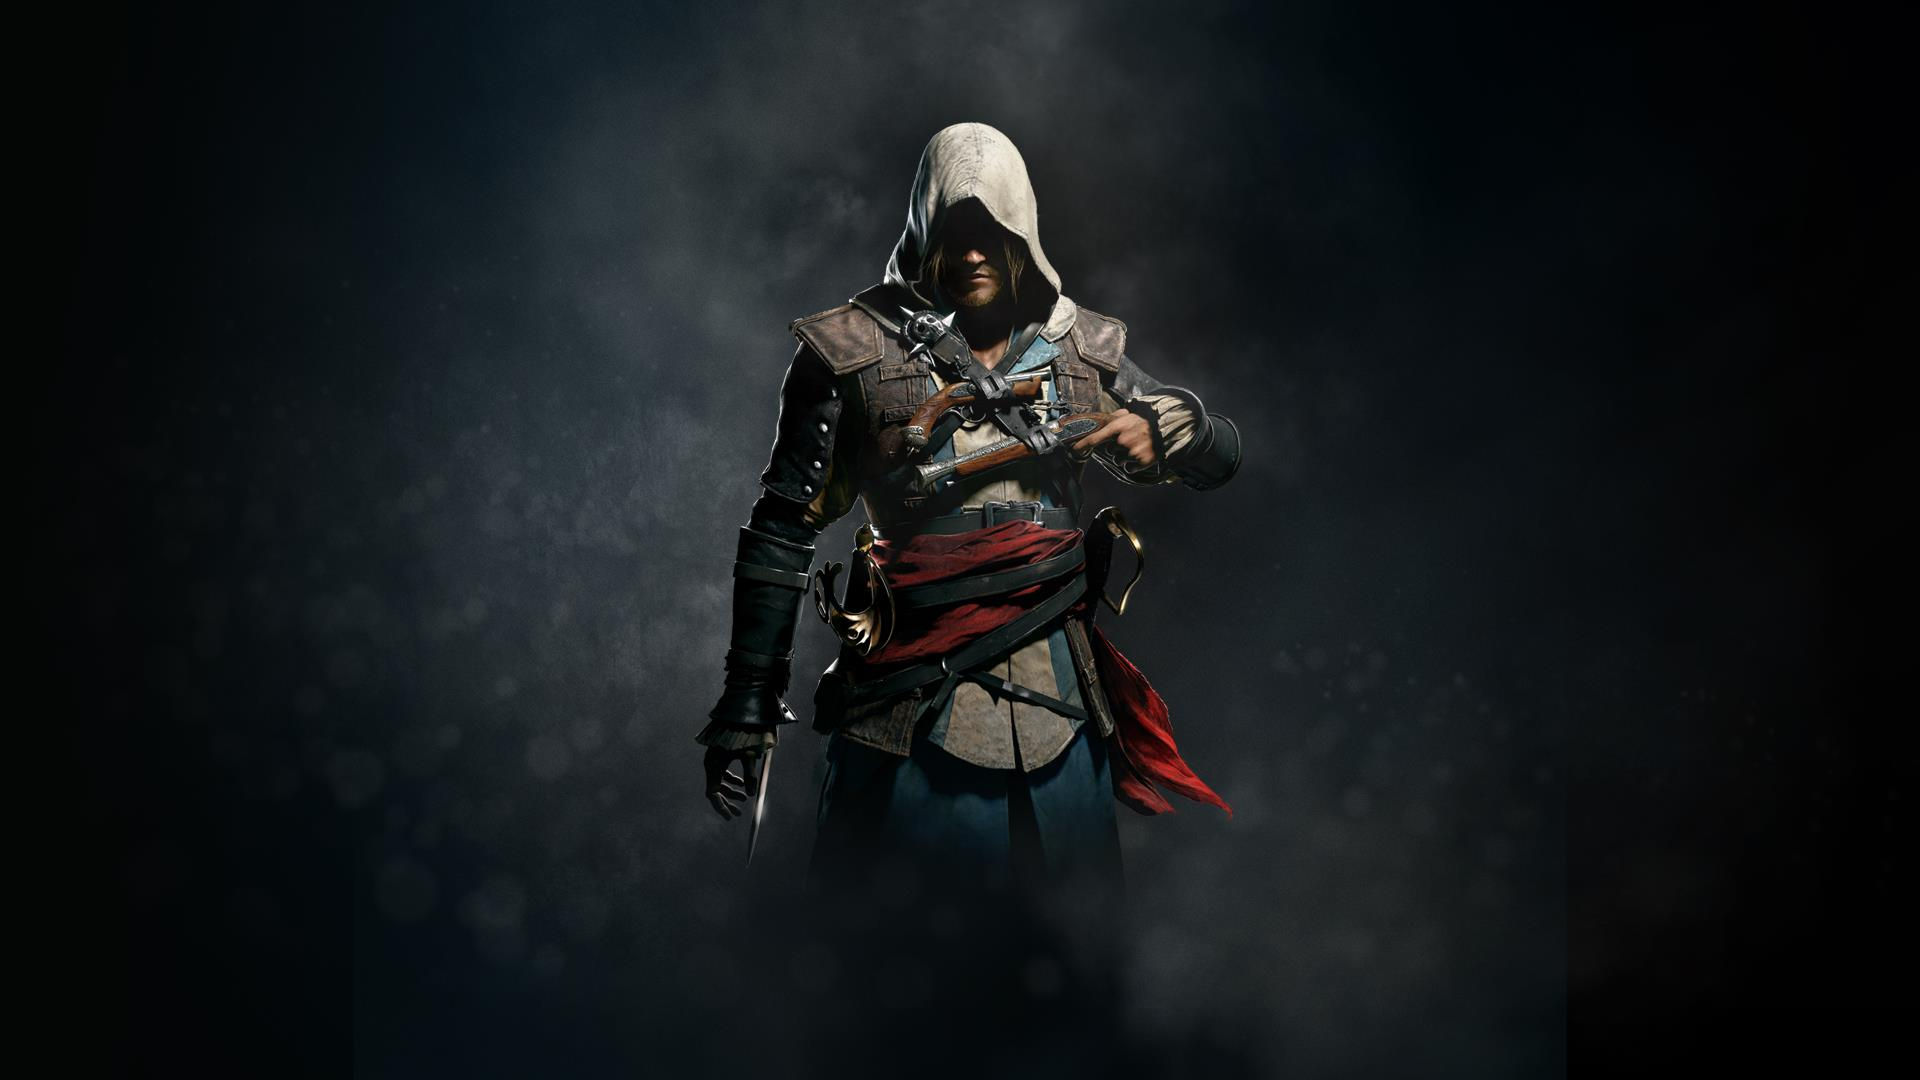 Killer Killer in Assassin's Creed IV: Black Flag